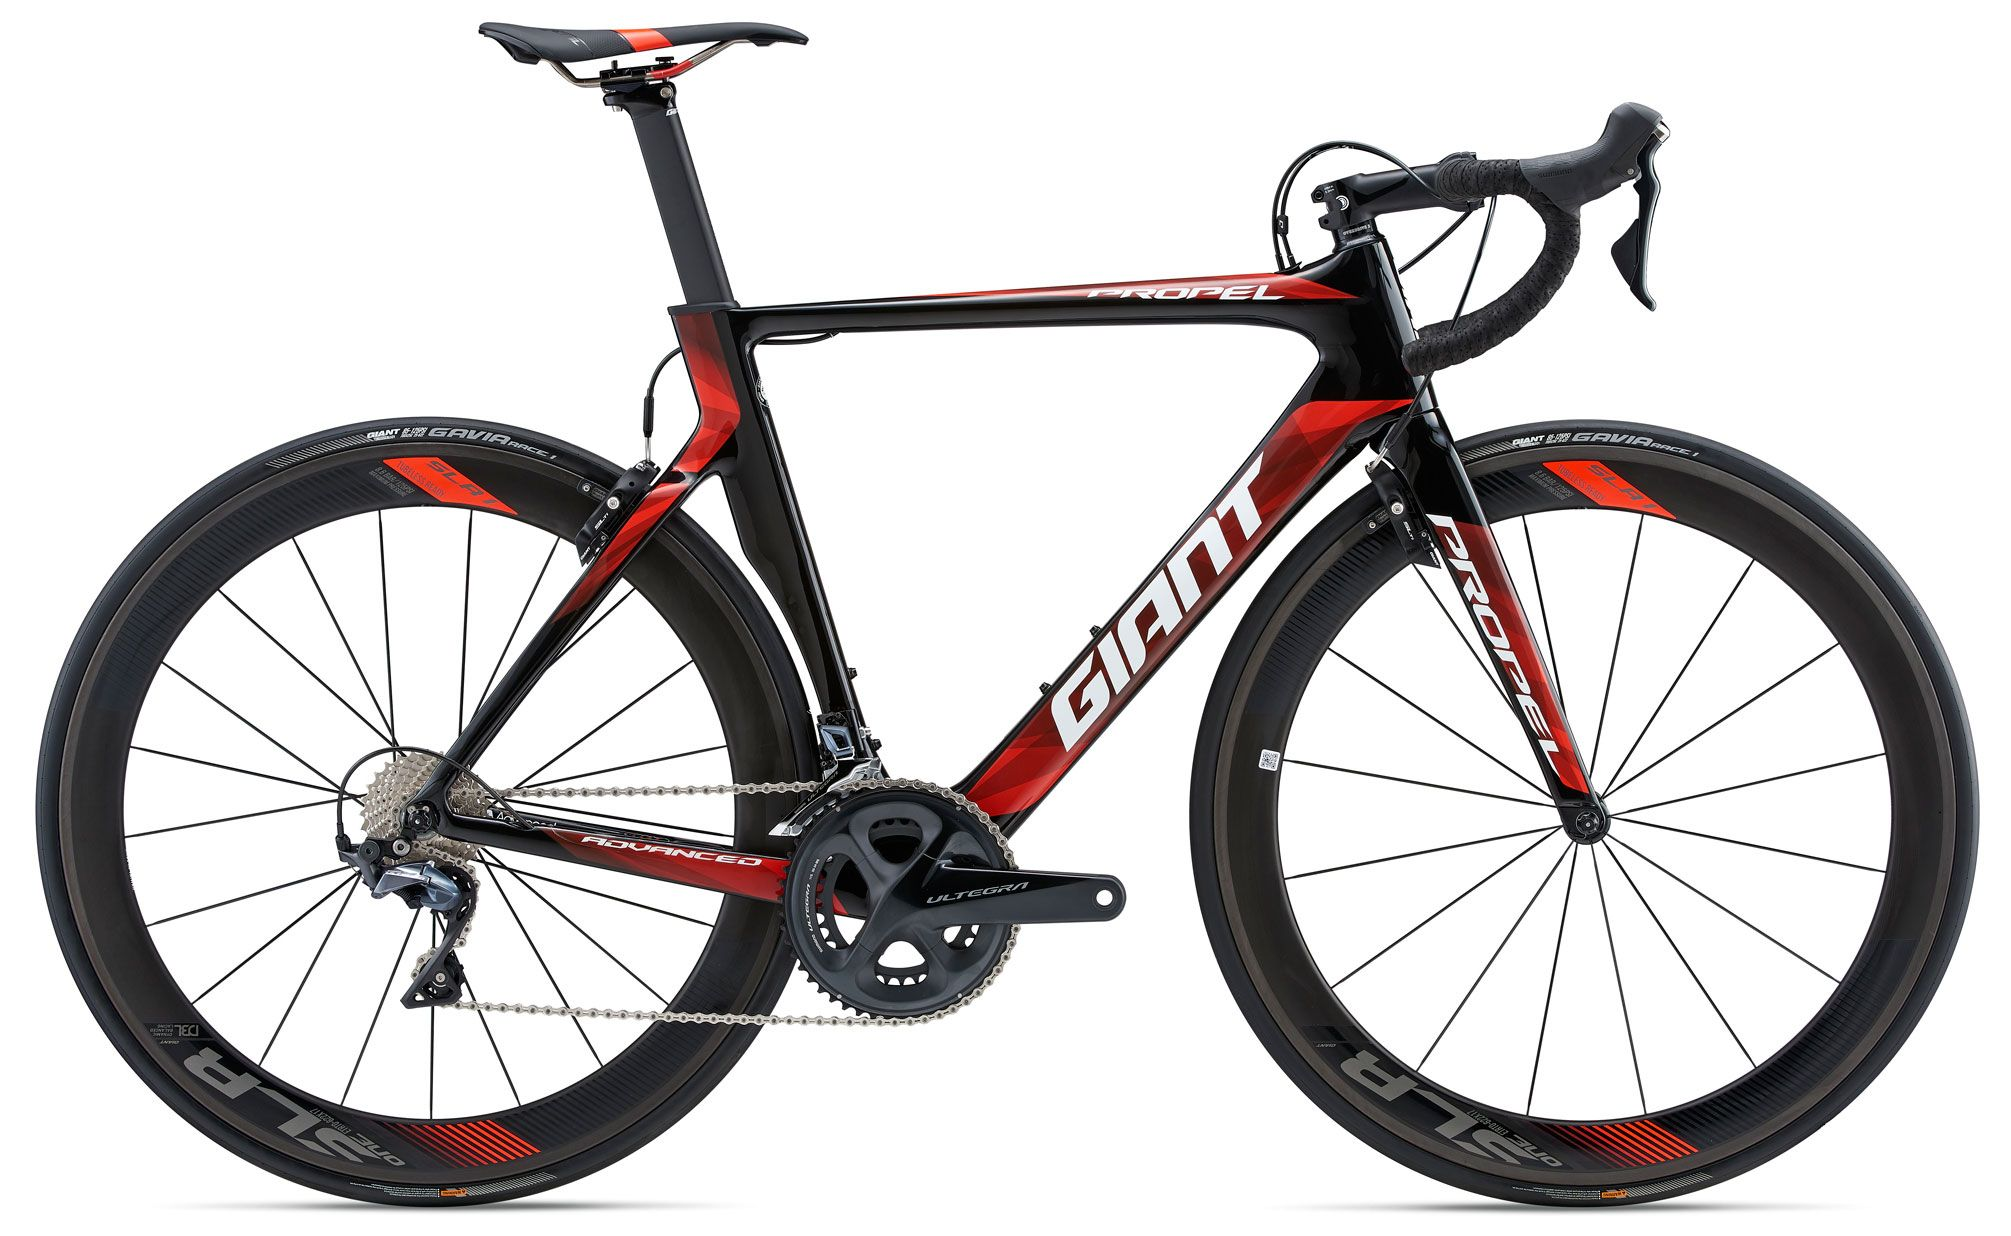 Велосипед Giant Propel Advanced Pro 1 2018 велосипед giant defy advanced pro 0 compact 2015